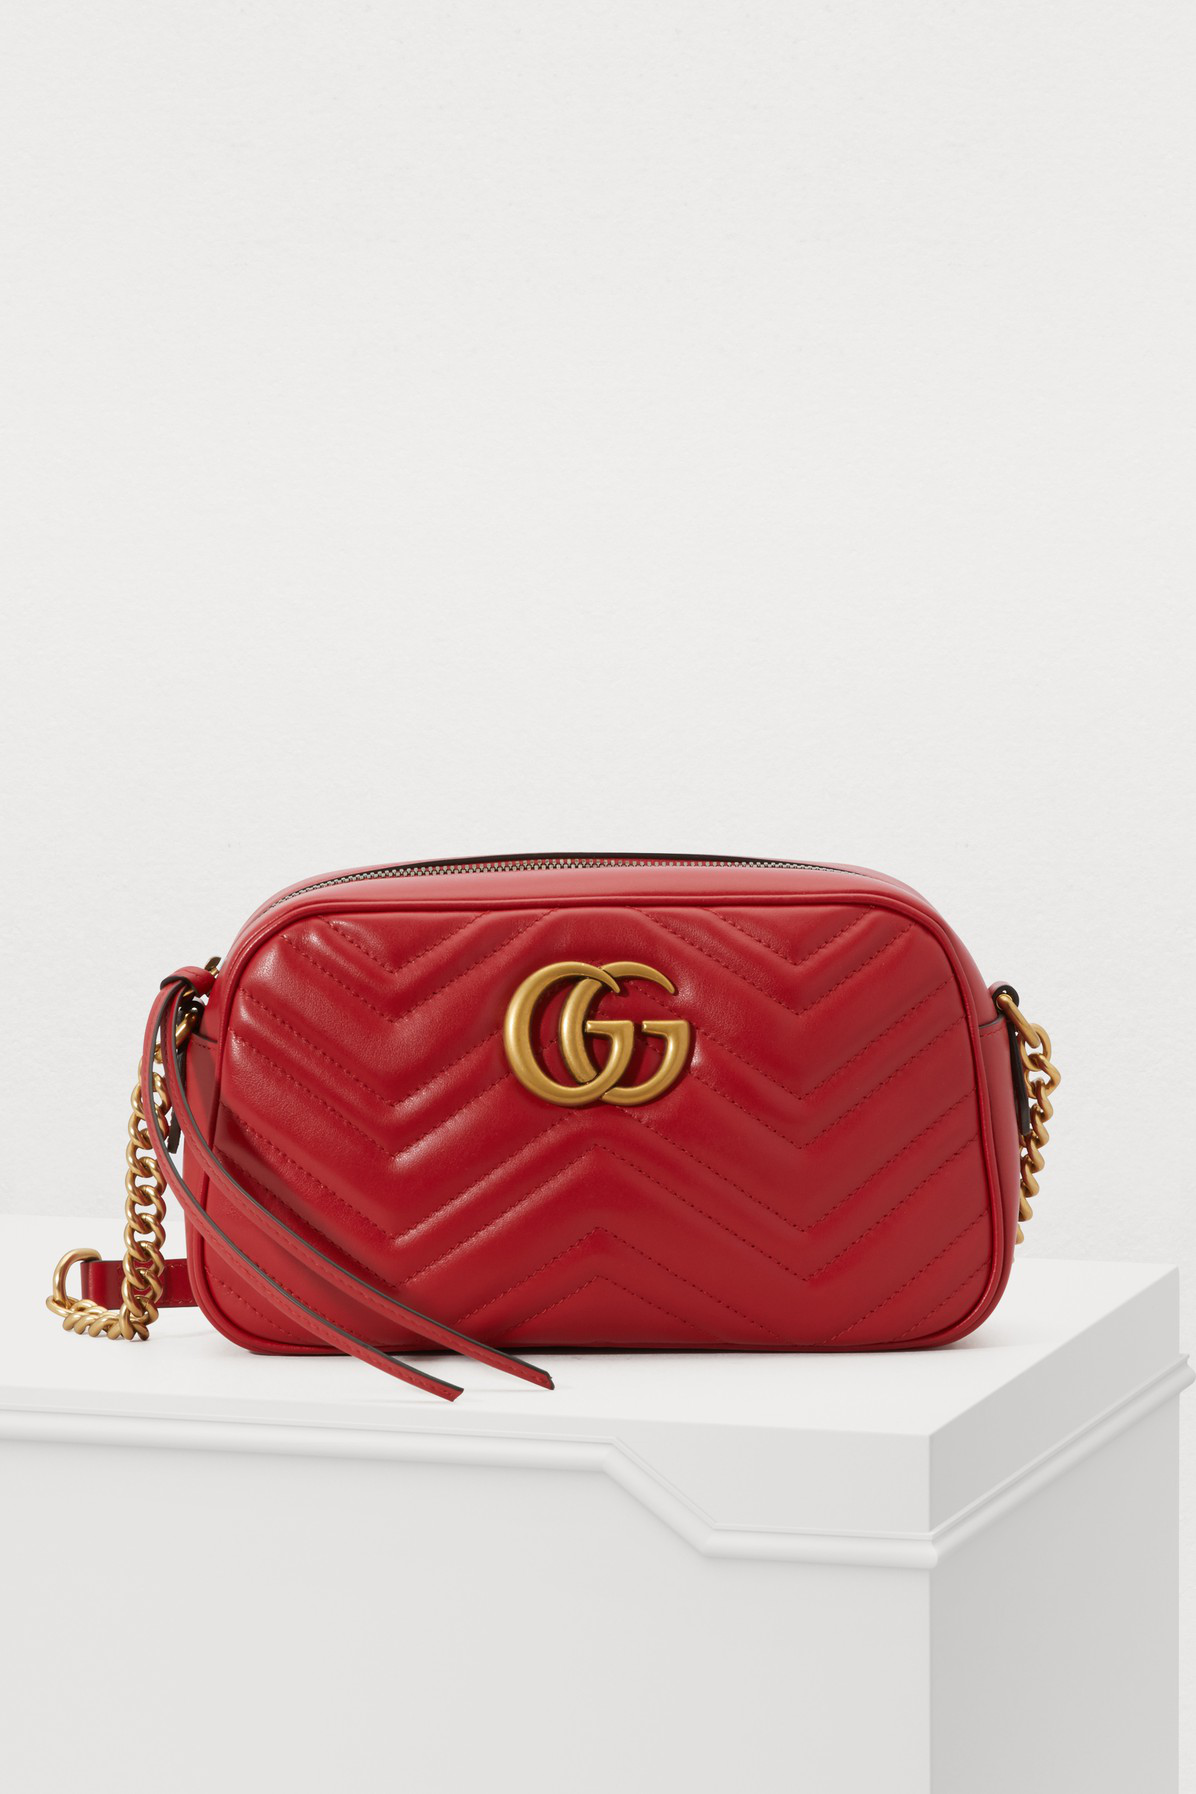 d401ef20269f86 Gucci Women's Red Gg Marmont Mini Quilted Leather Cross-Body Bag ...